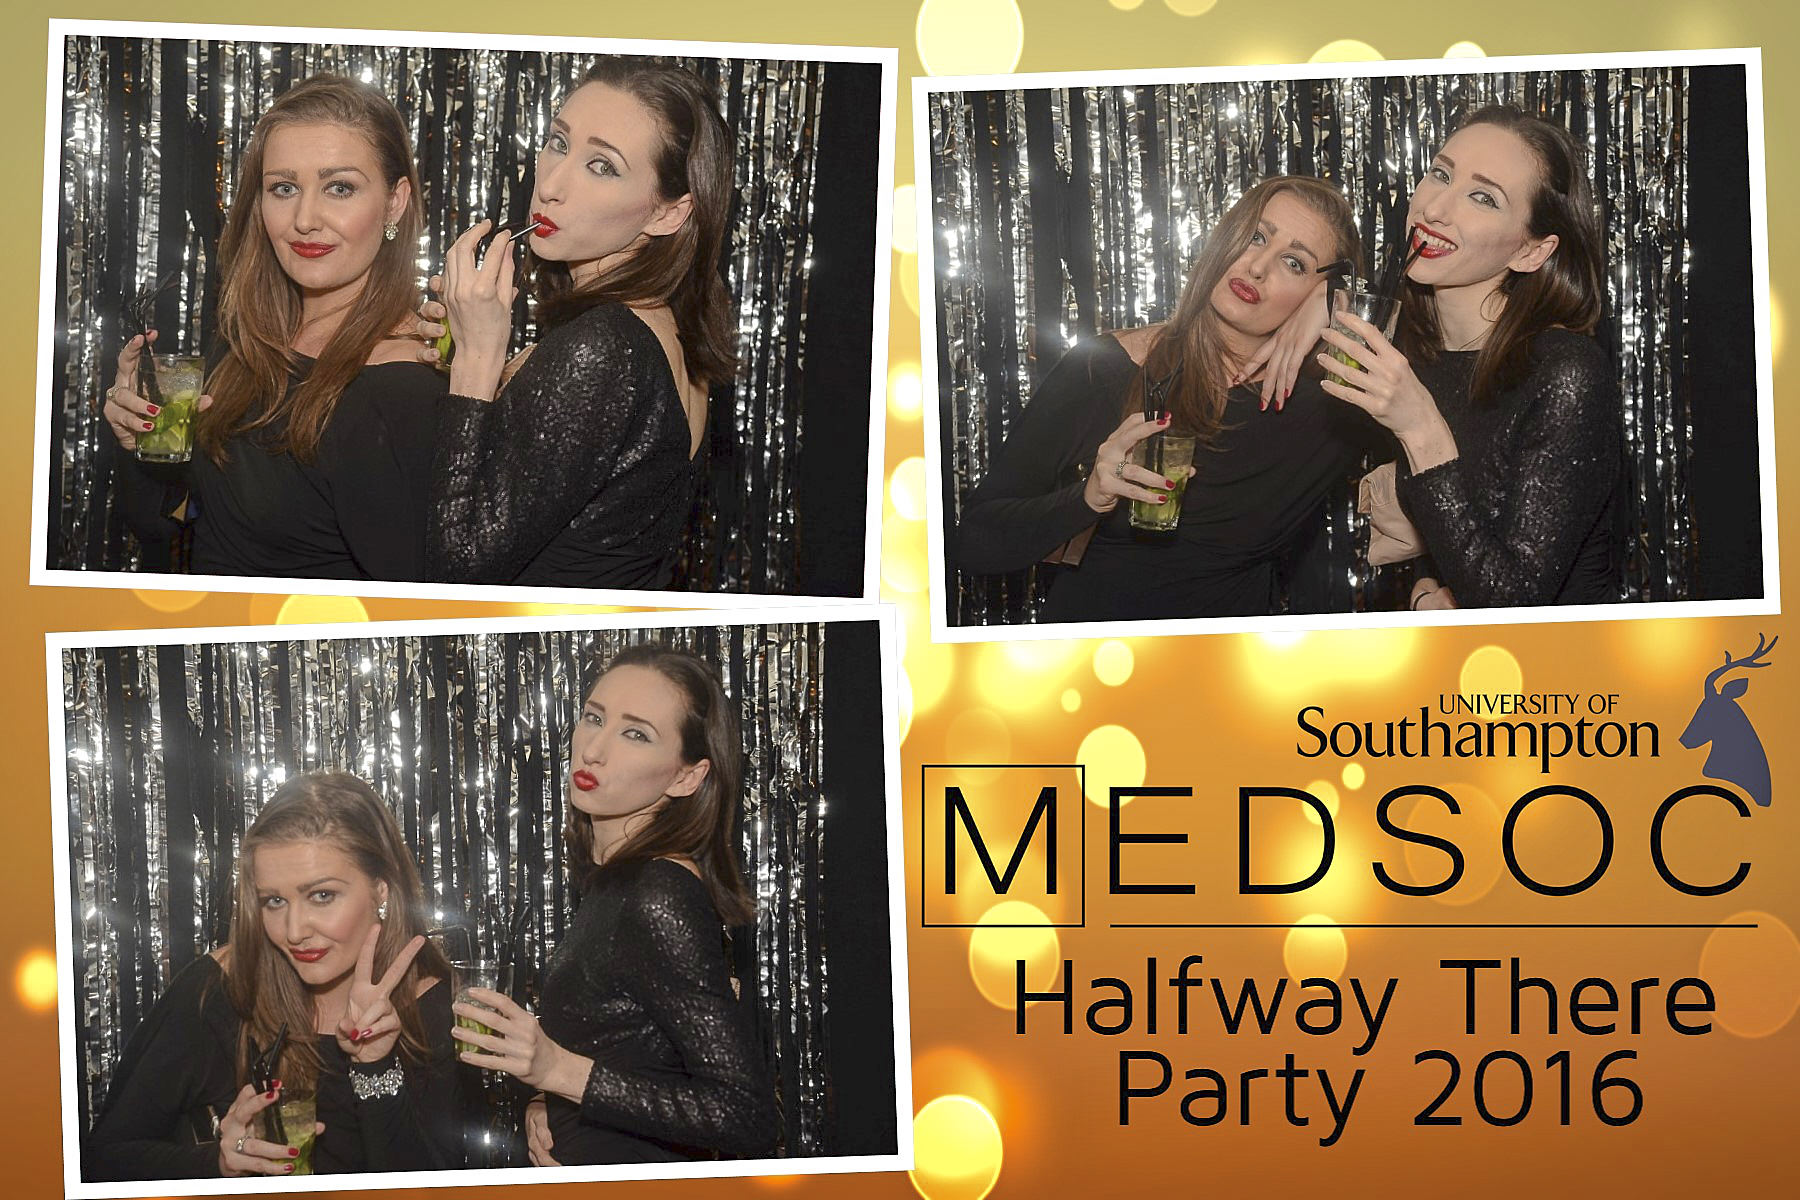 MedSoc Halfway There Party 2016 DS225701.jpg